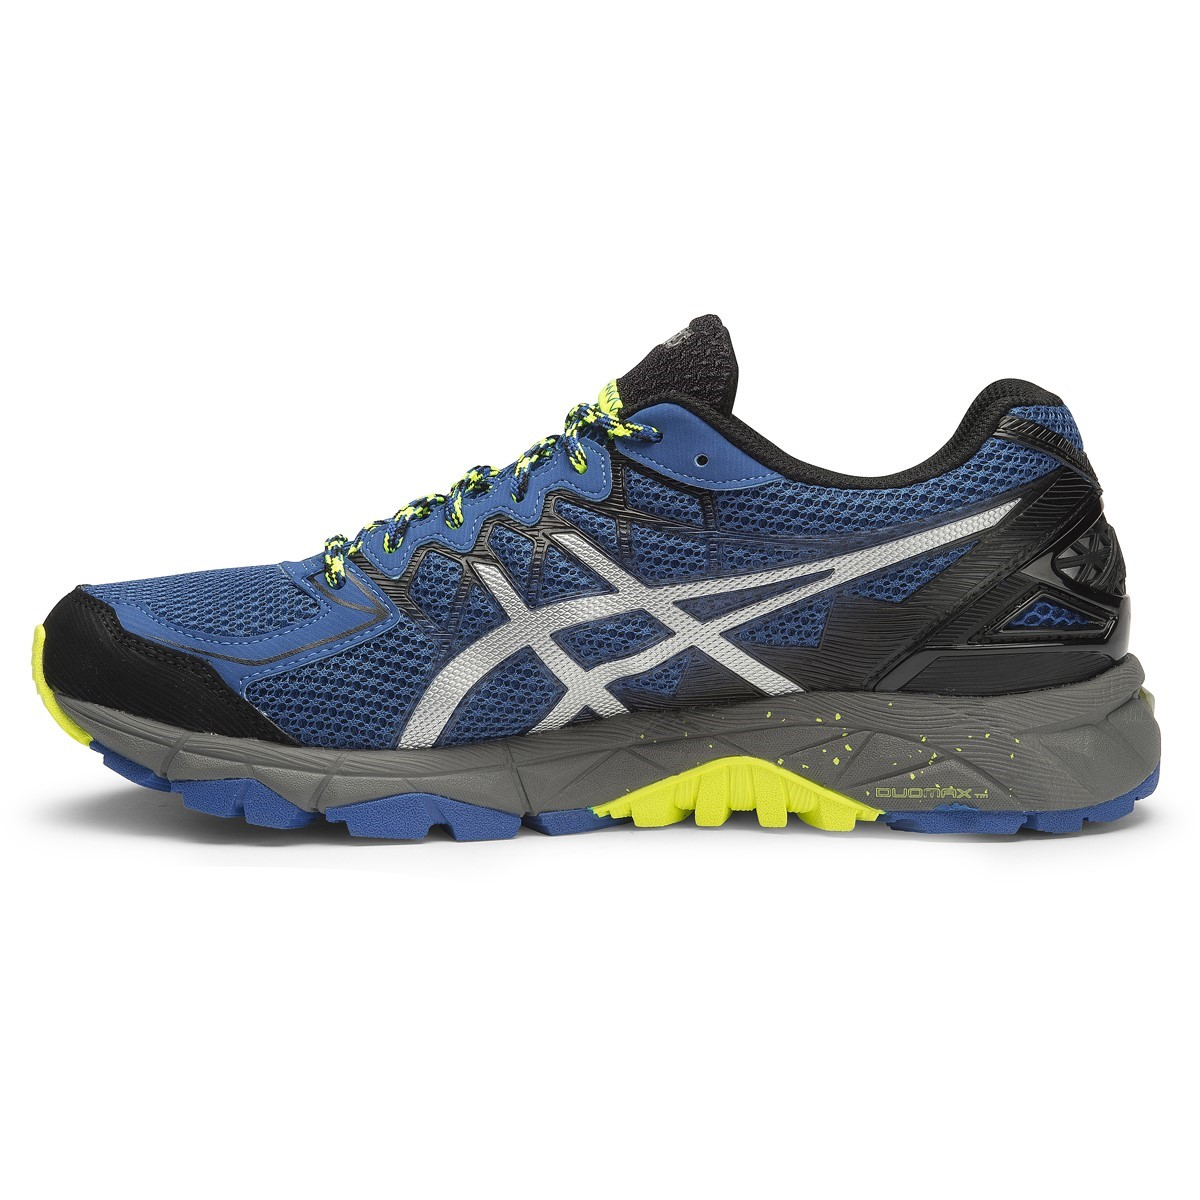 asics gel fuji trabuco 4 mens trail running shoes snorkel blue silver flash yellow online. Black Bedroom Furniture Sets. Home Design Ideas